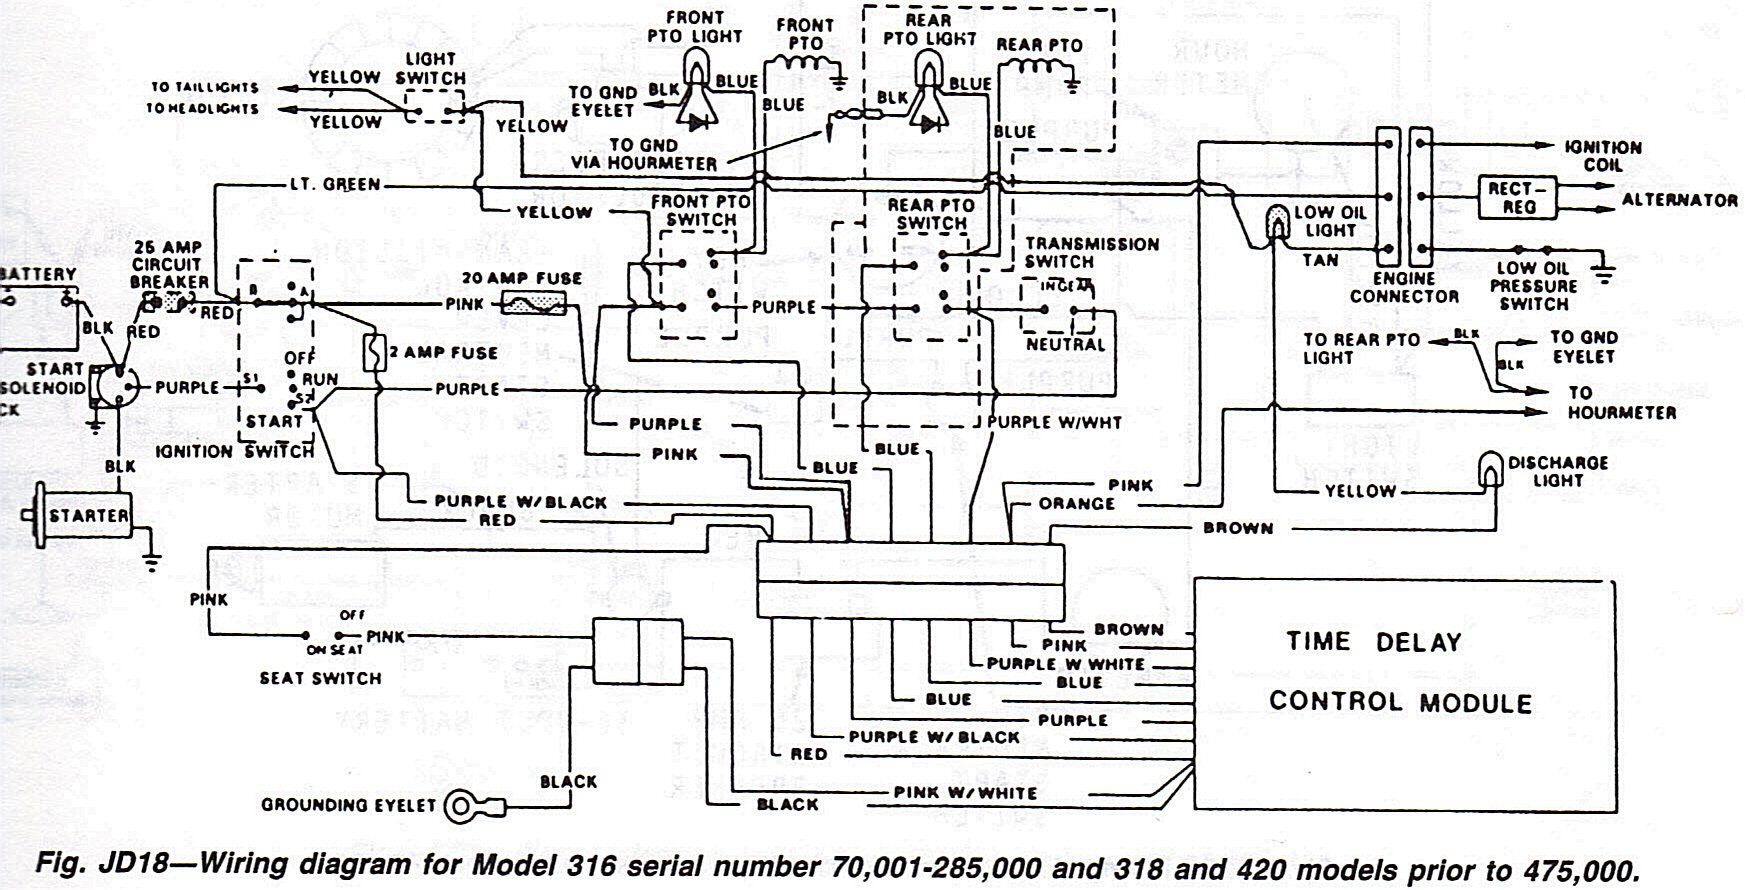 John Deere 318 Wiring Diagram on john deere wiring schematics